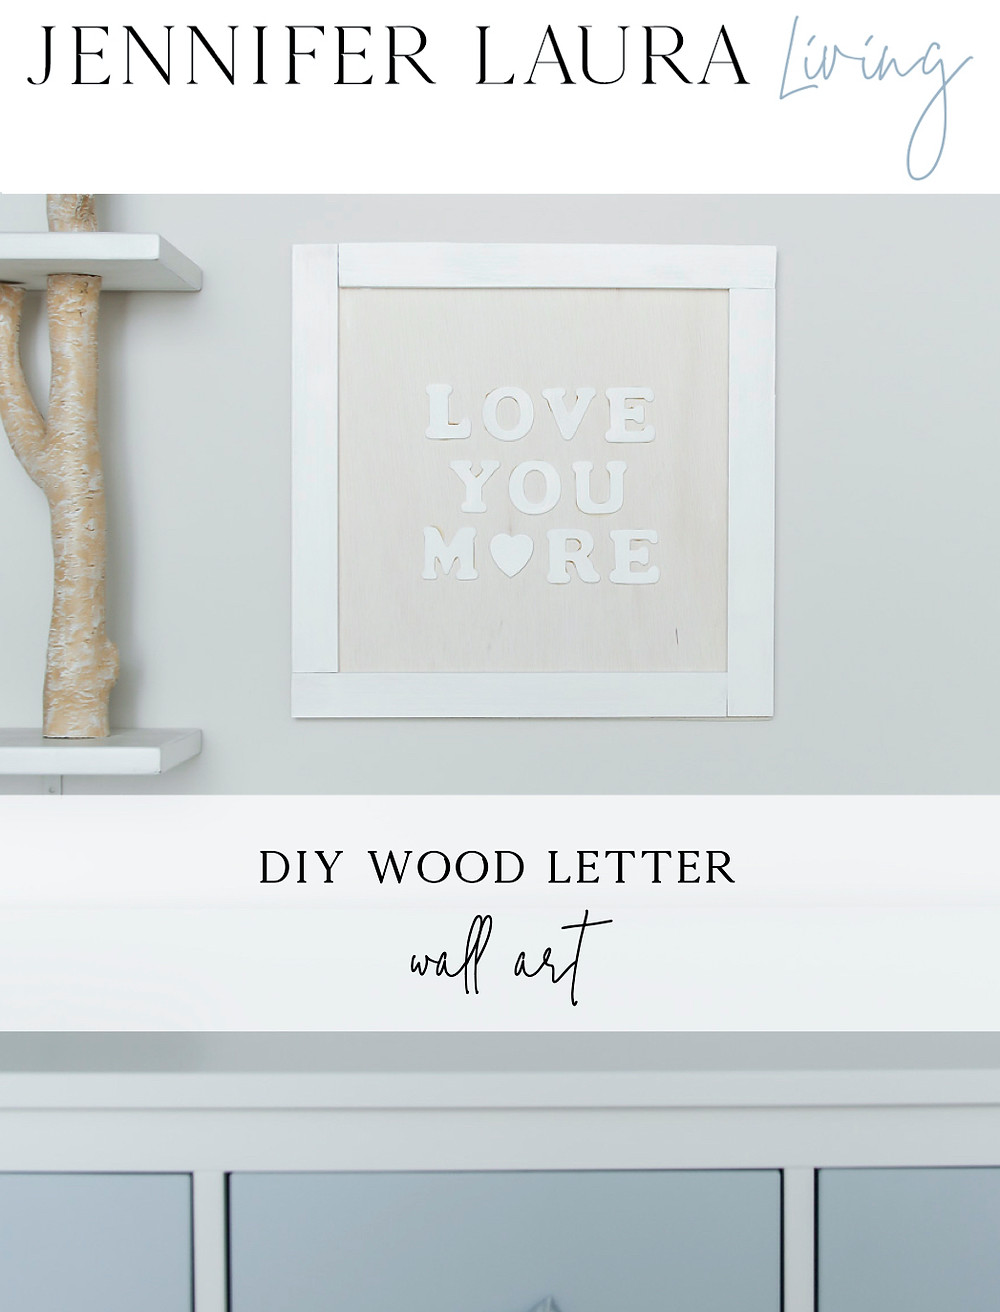 DIY wood letter wall art